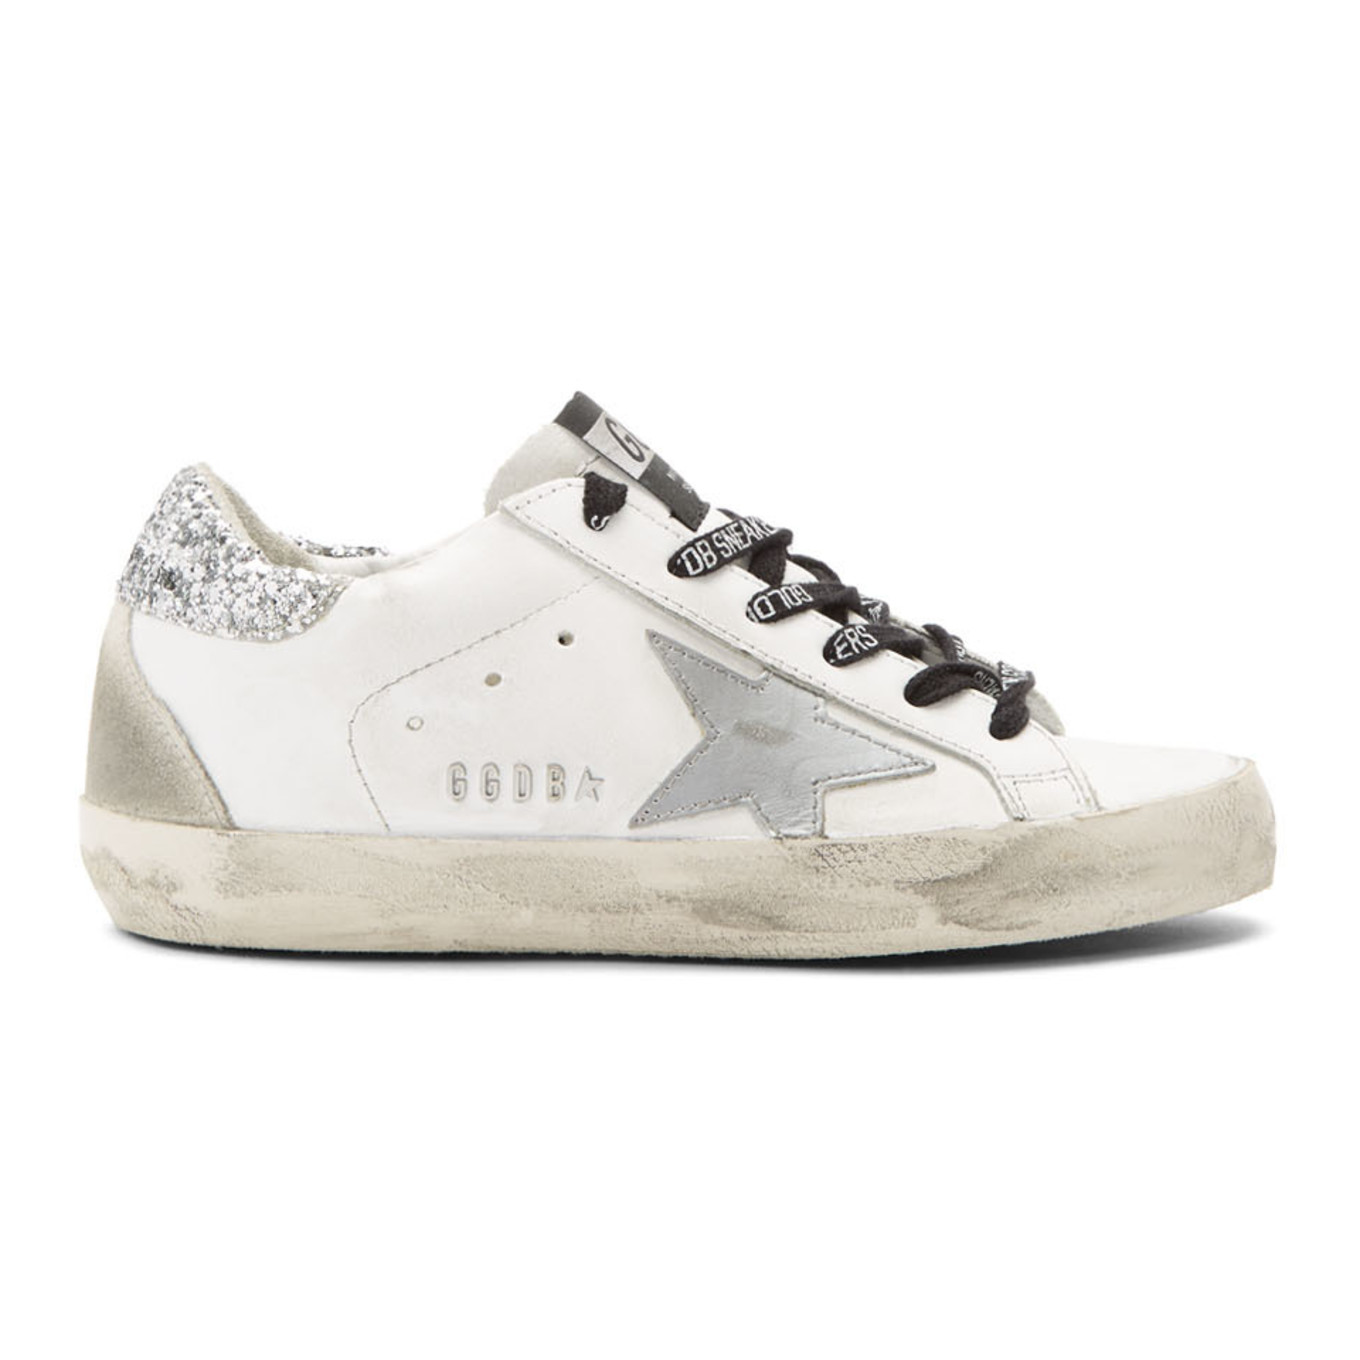 White & Silver Glitter Tab Superstar Sneakers by Golden Goose